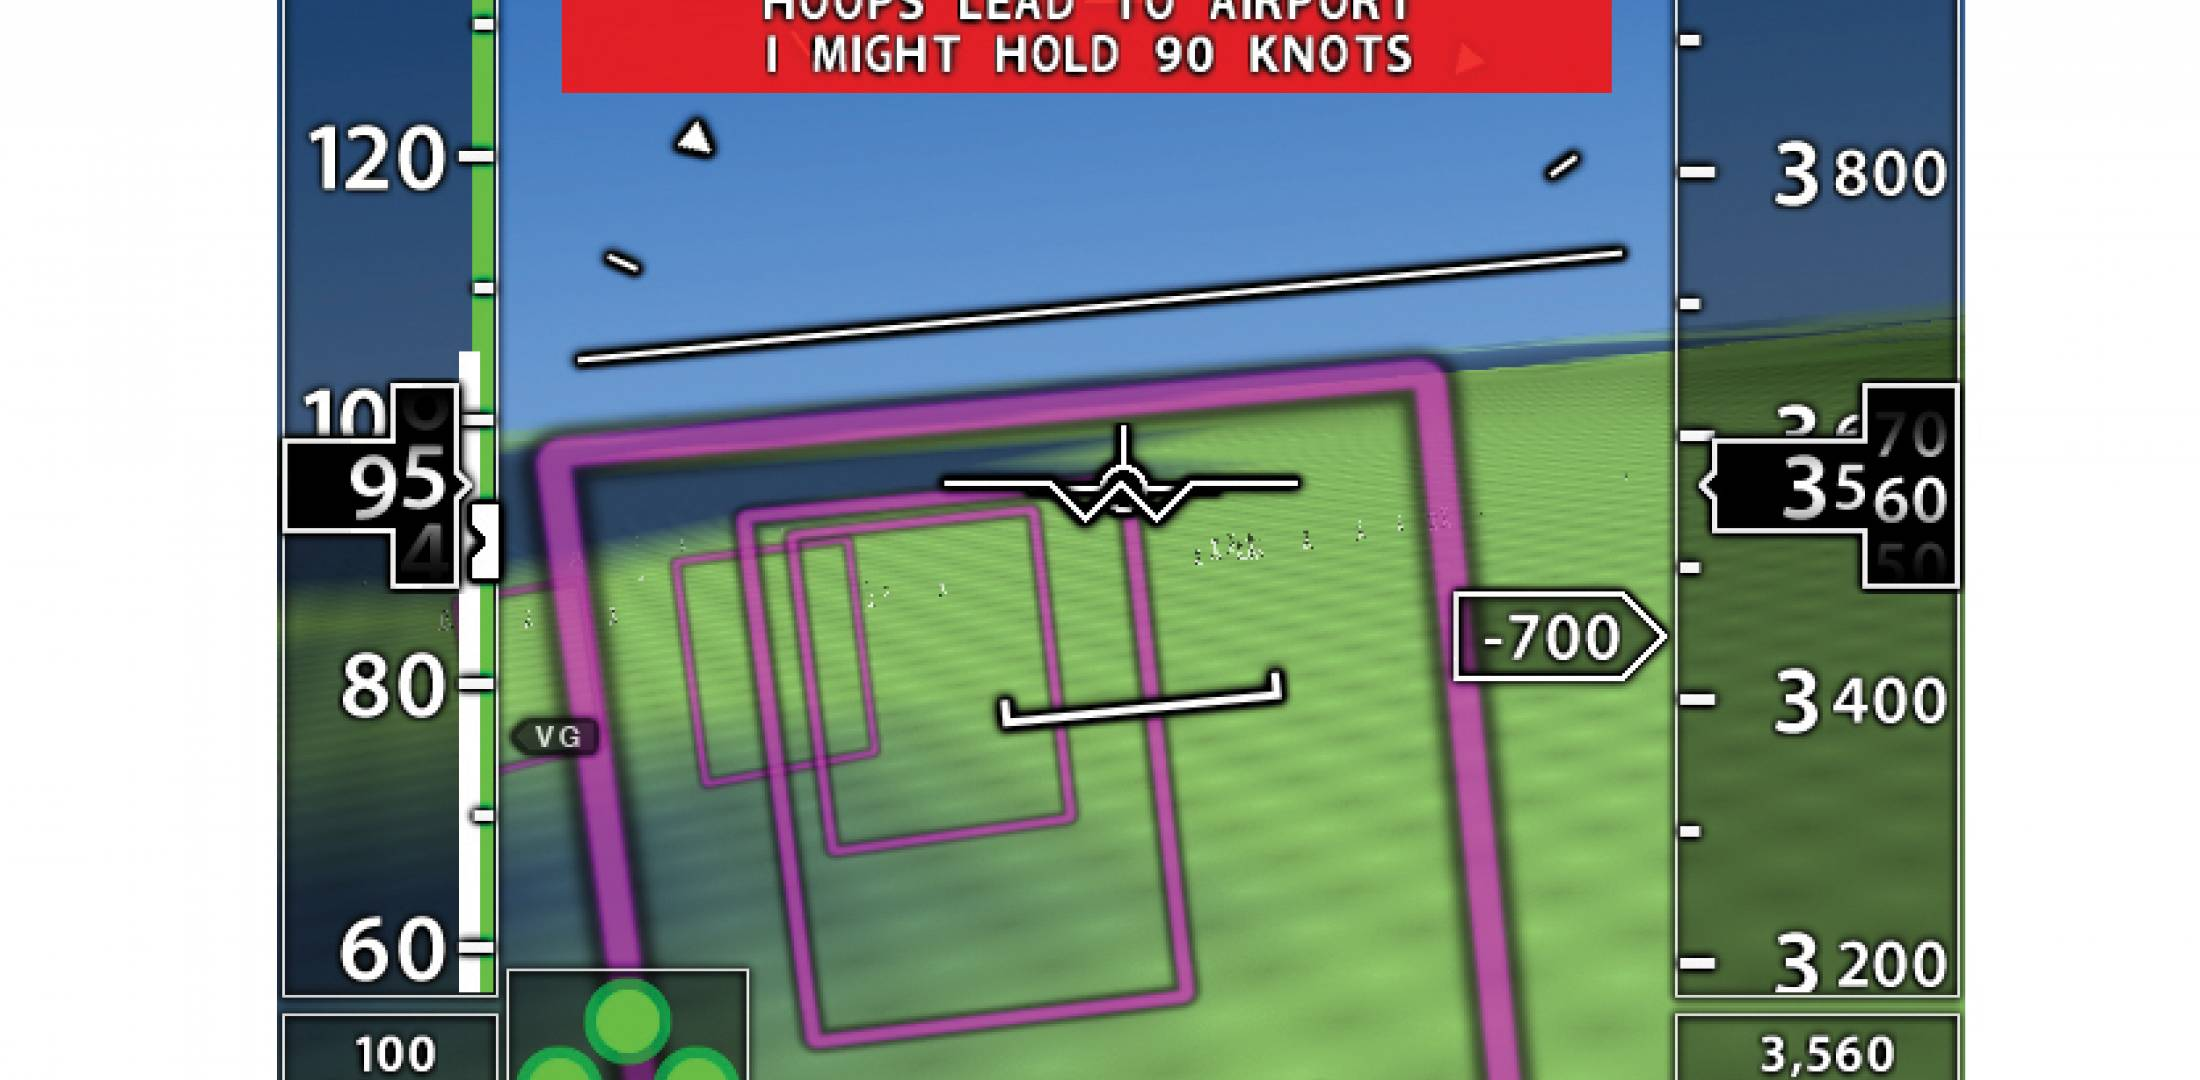 Magenta hoops on the upper PFD section depict the Xavion-determined flight path. The airports are color-coded, indicating reachable airports.